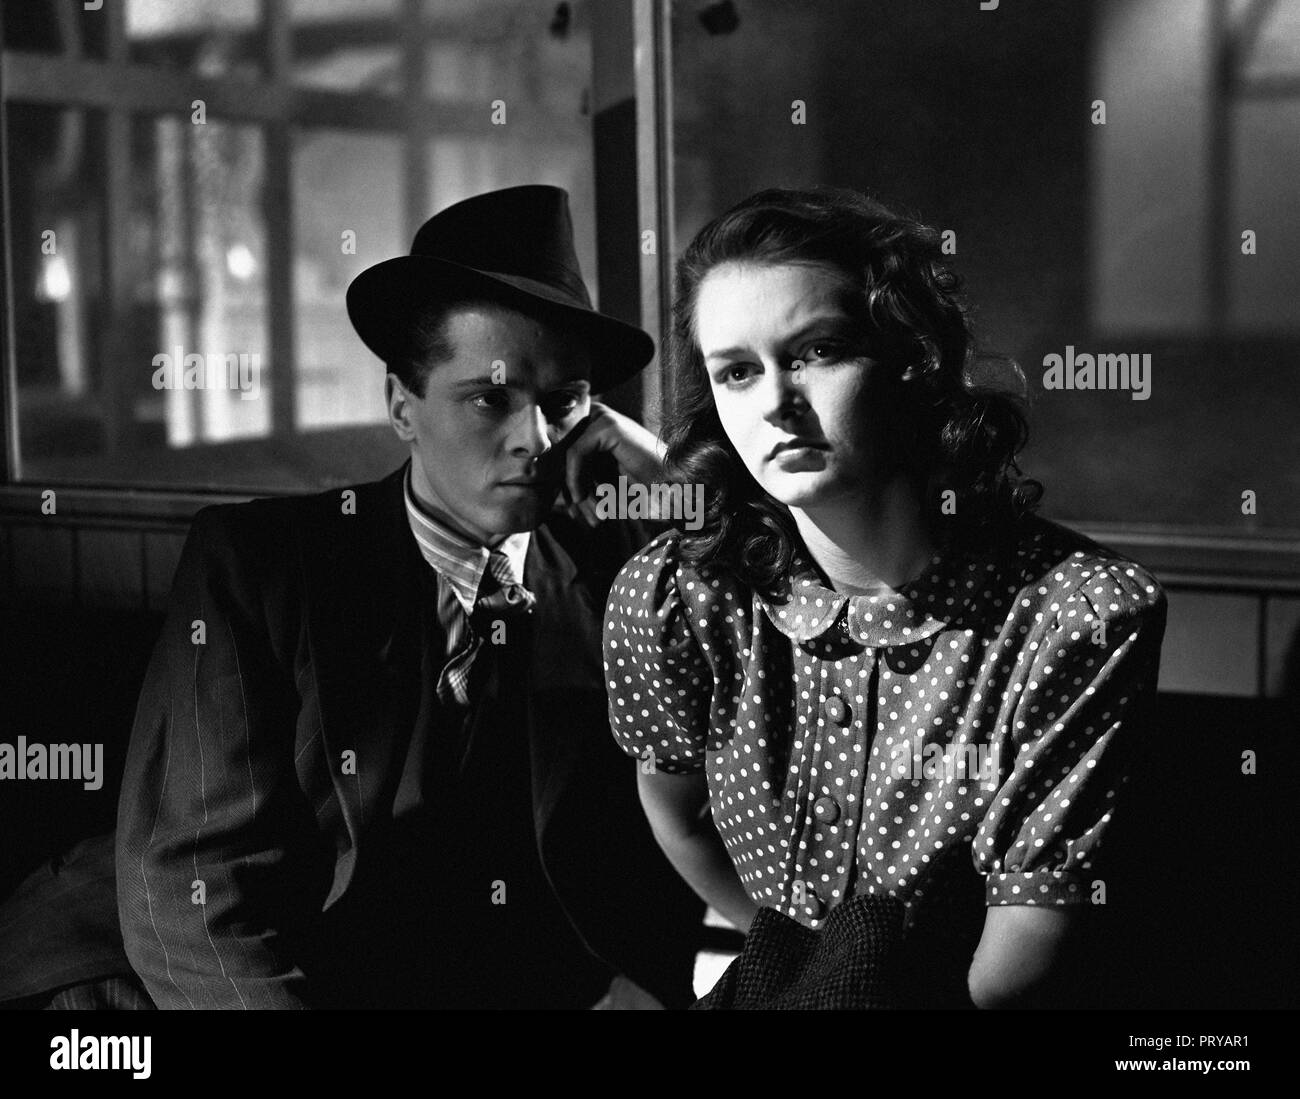 Prod DB © Pathe Pictures Ltd. - Associated British Picture Corporation - Charter Film Productions / DR LE GANG DES TUEURS BRIGHTON ROCK de John Boulti - Stock Image